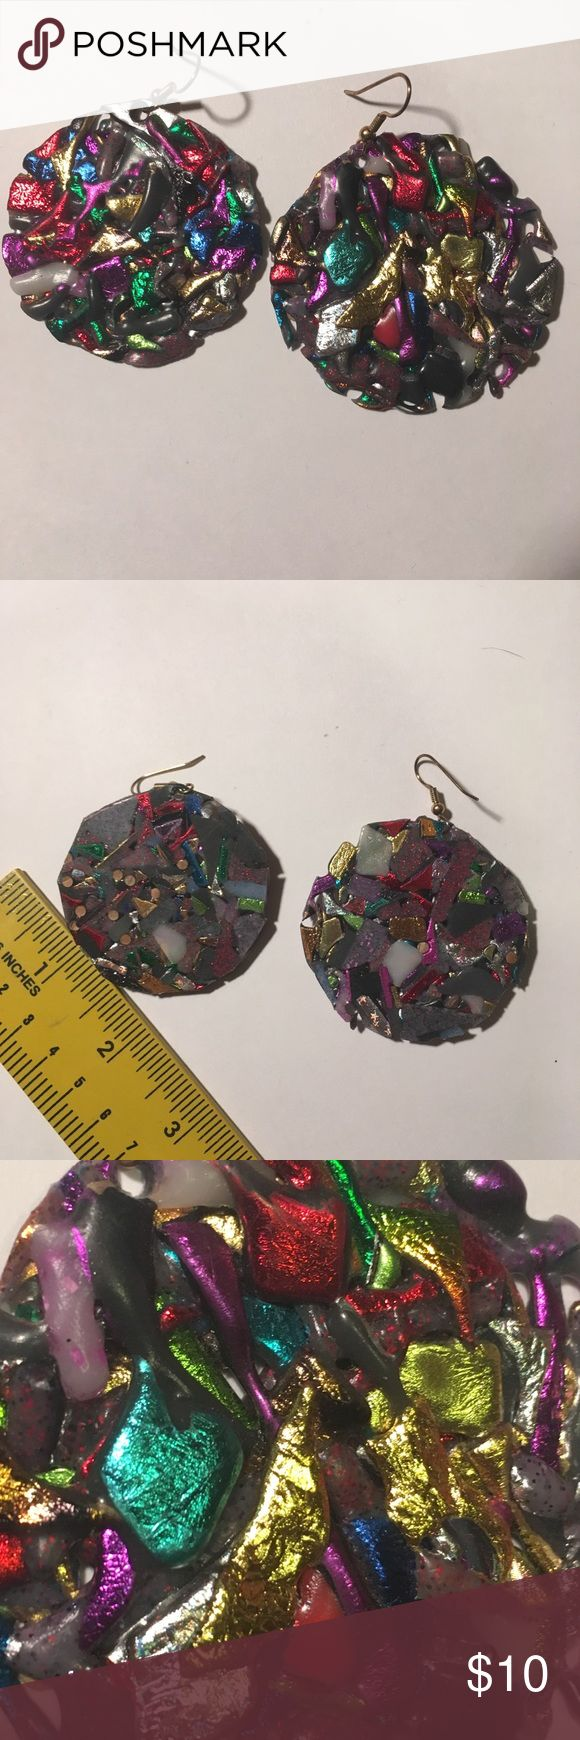 Retro Metallic Melted Plastic Round plate earrings The earrings are lightweight melted matte and metallic plastic. Front side is textured, back side is flat. They measure with a two inch diameter. The just make me laugh. Let's just say they get noticed. Jewelry Earrings